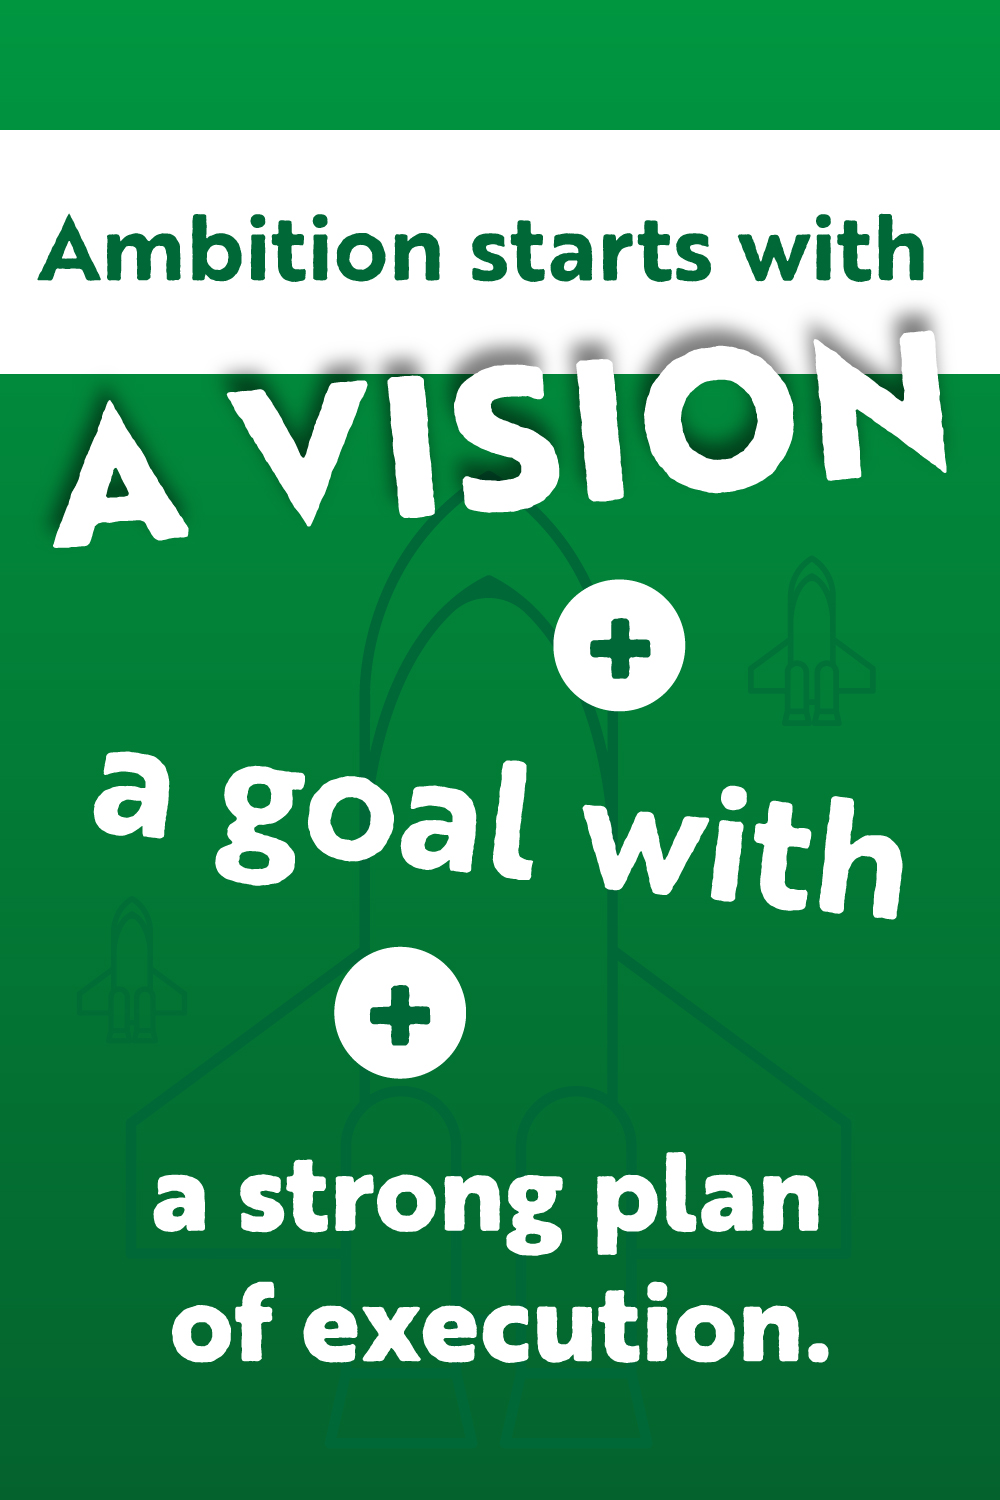 Infographic-on-what-ambition-start-with-green-background-and-white-text.